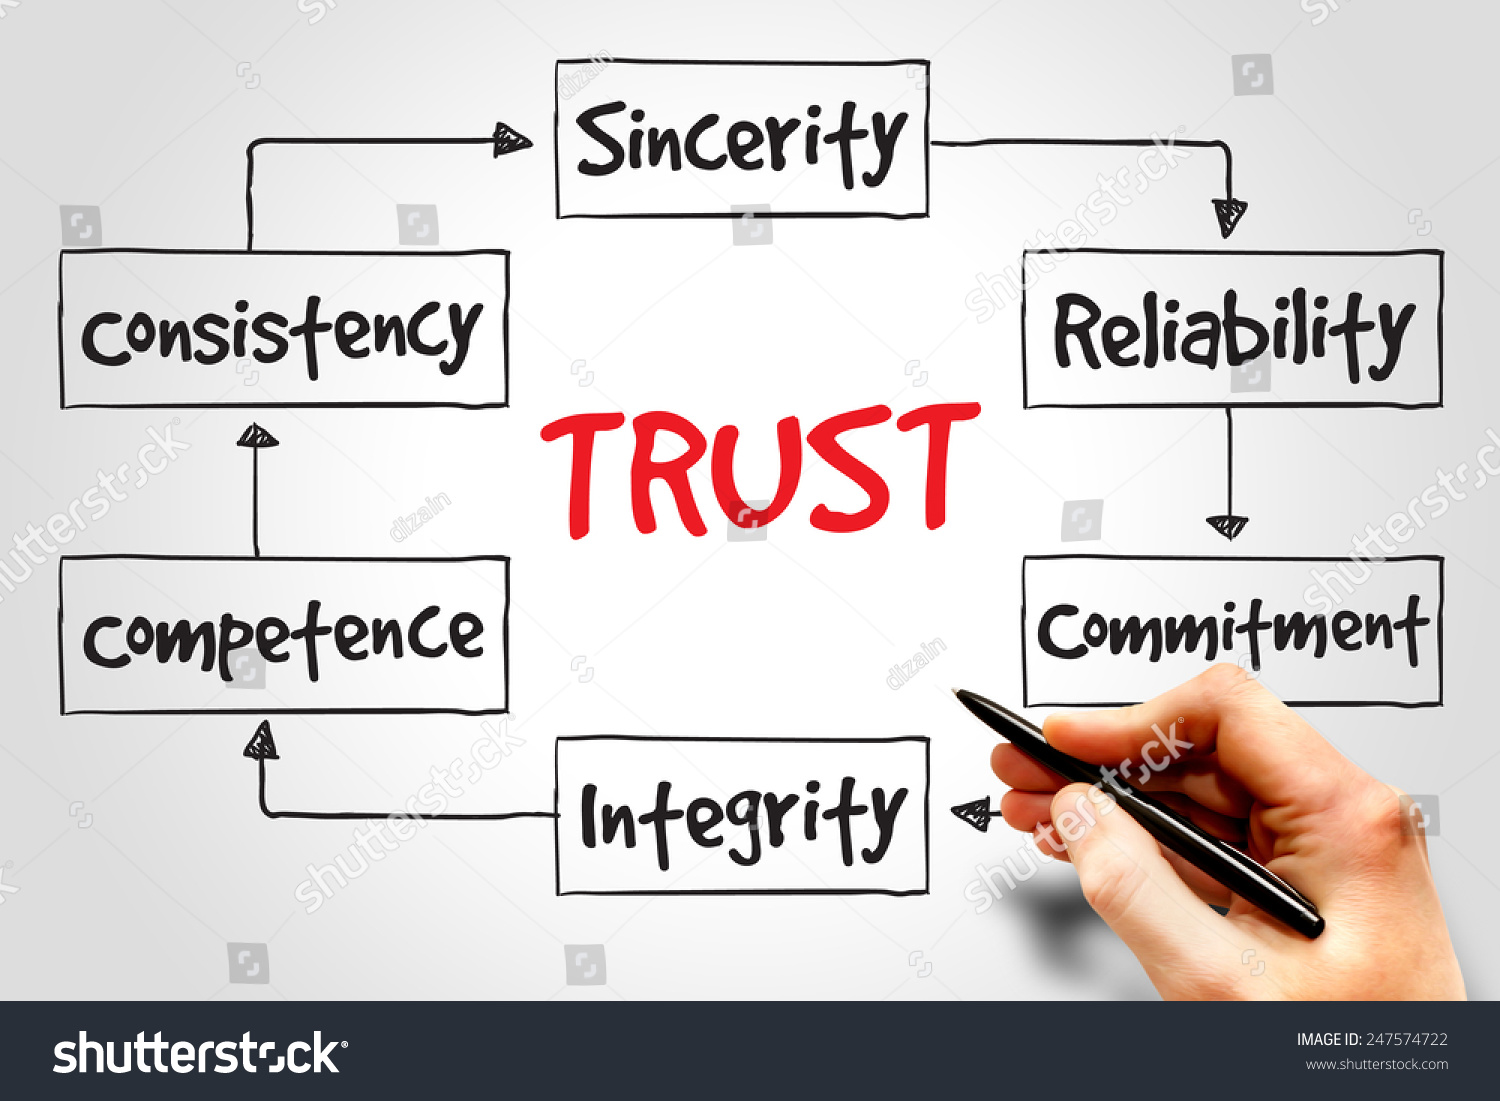 concept of trust analysis Trust is a vital relationship concept that needs further conceptual analysis, not just empirical testing trust has been defined in so many ways by so many different researchers across.